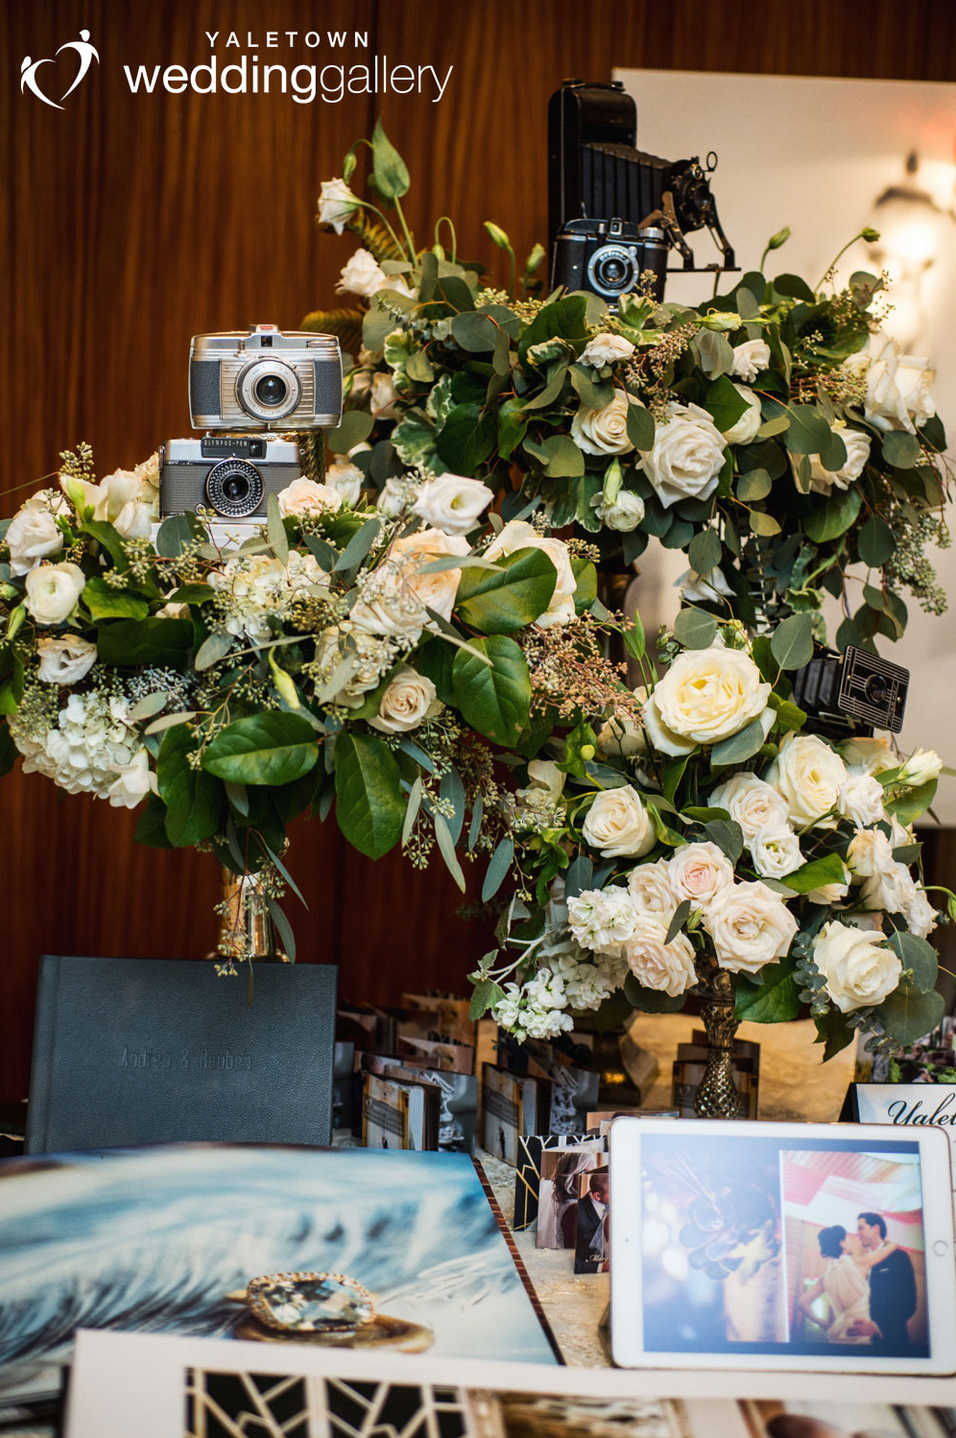 Cremeshow-2015-yaletown-wedding-gallery-table-display-floral-display-photography-display-photo